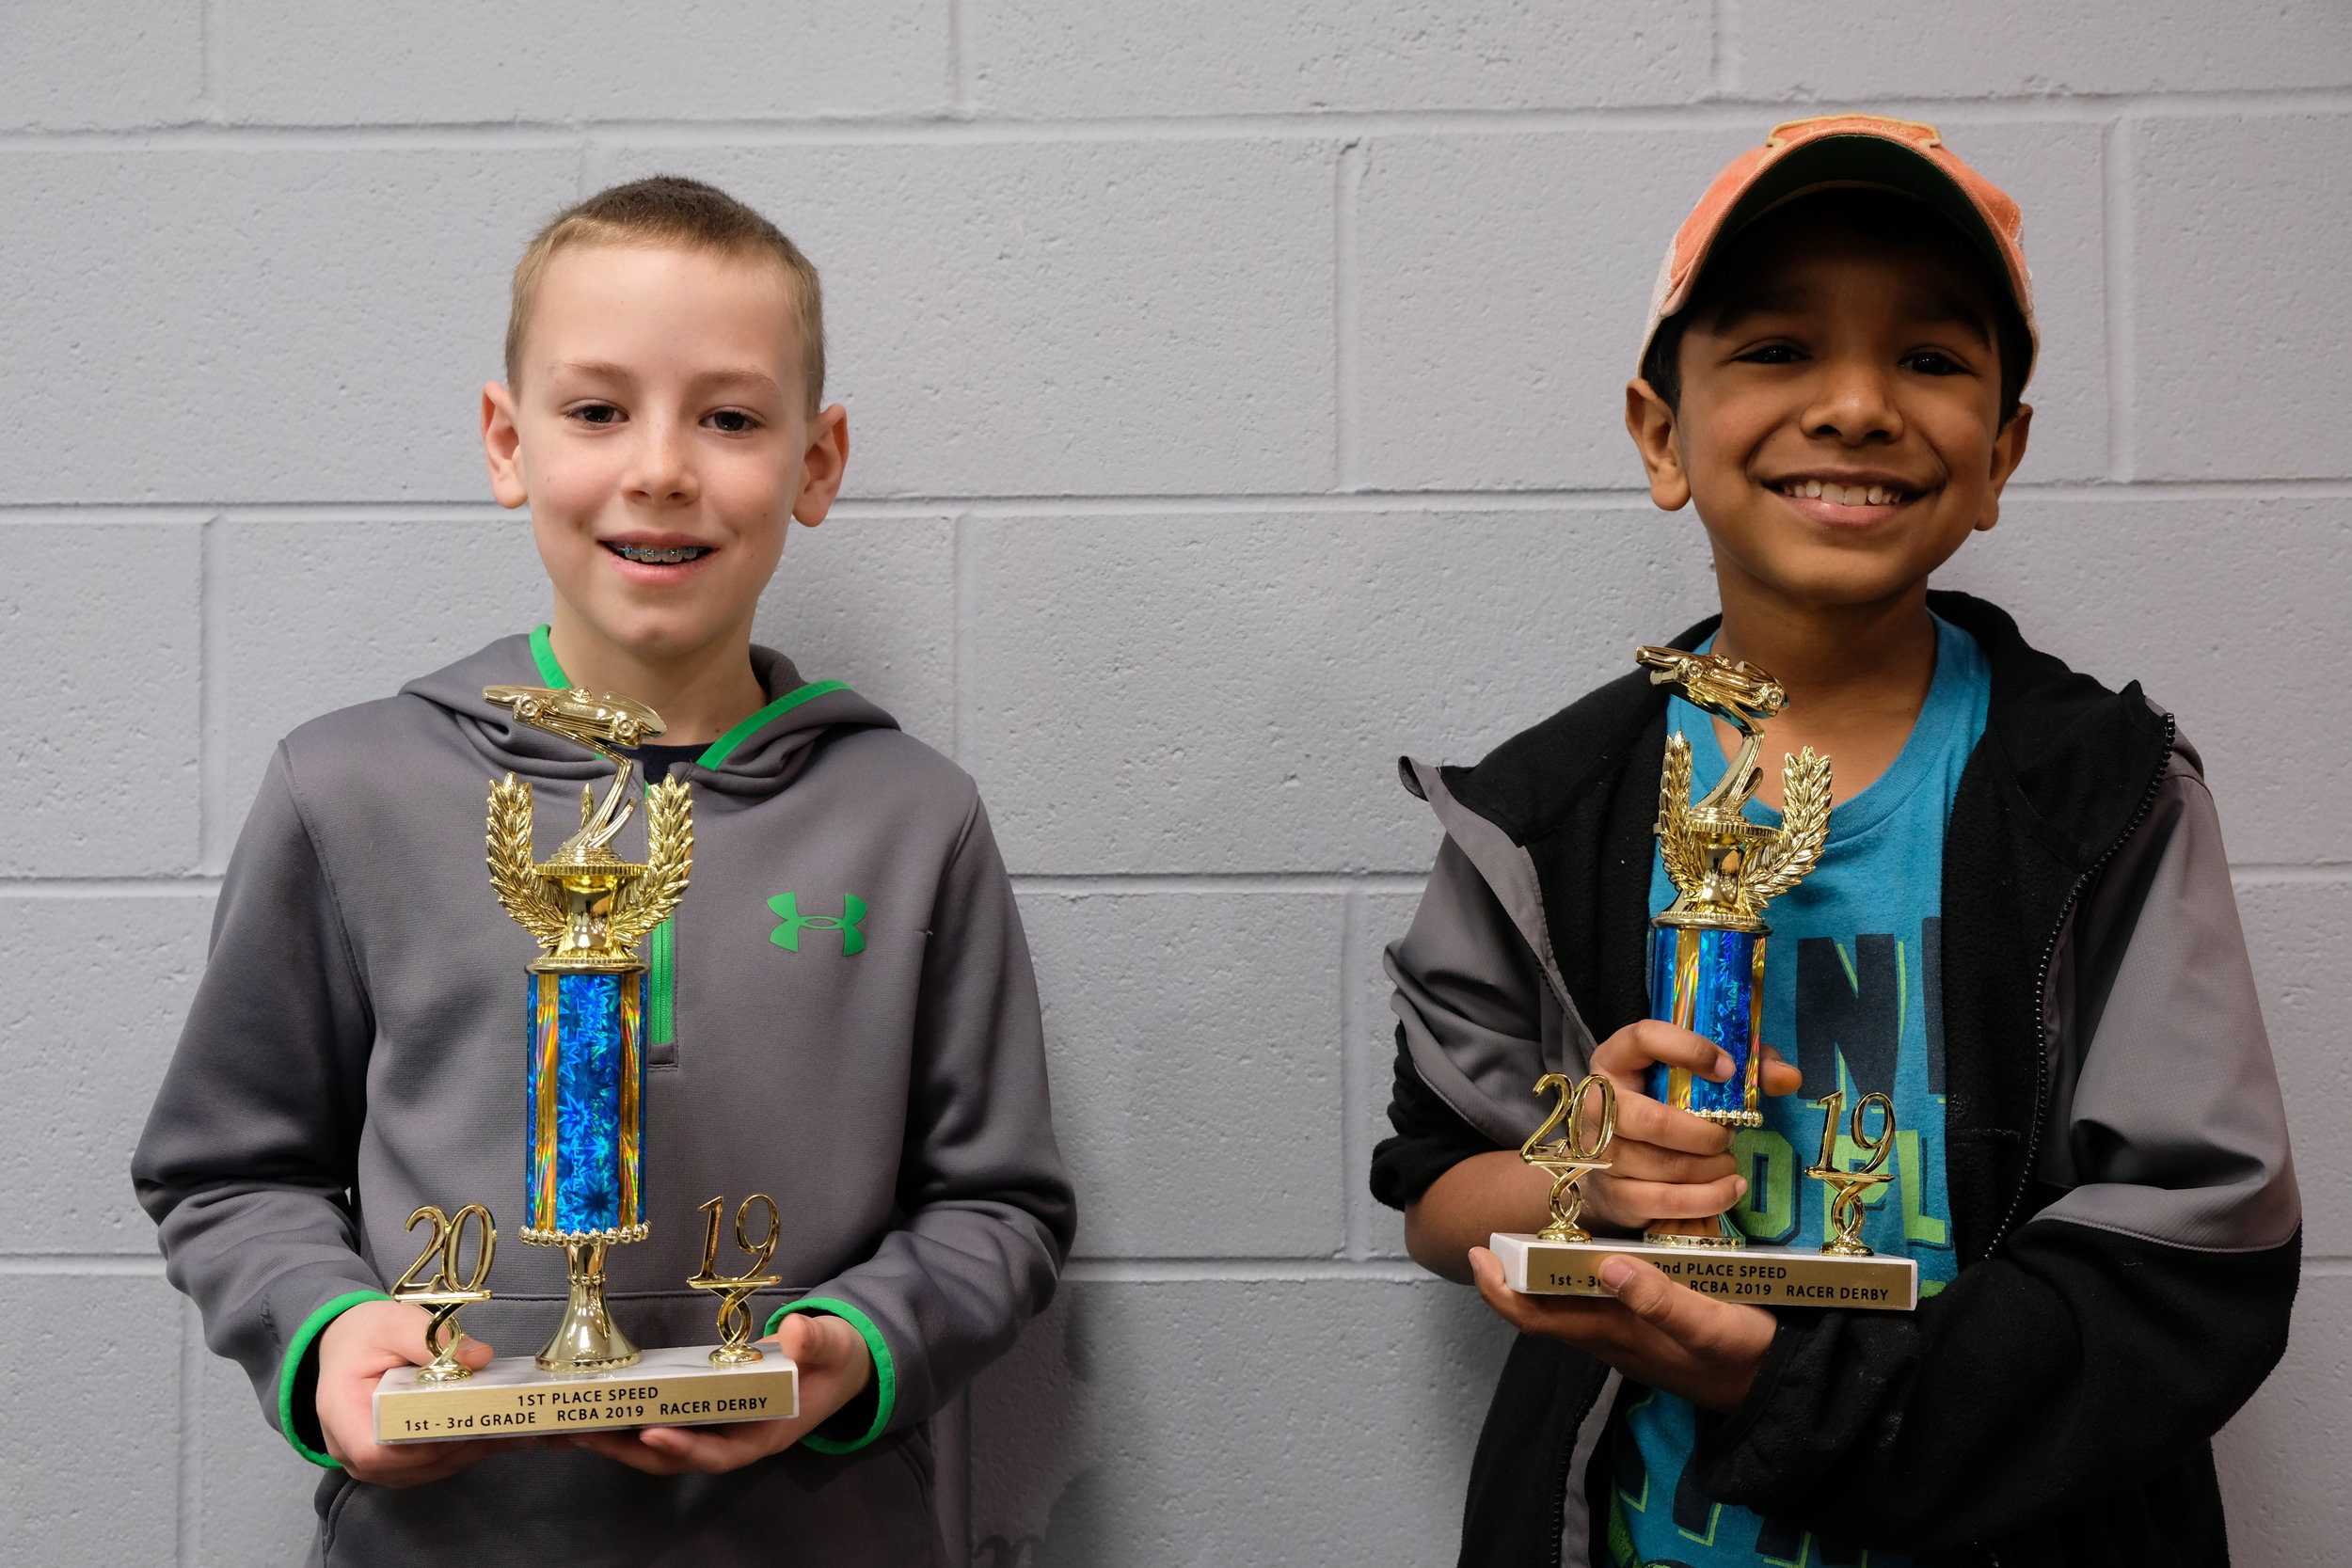 Derby Winners 1st - 3rd Grades Logan Weaver, Cedar Hill and Dominic Lindahl, Springfield